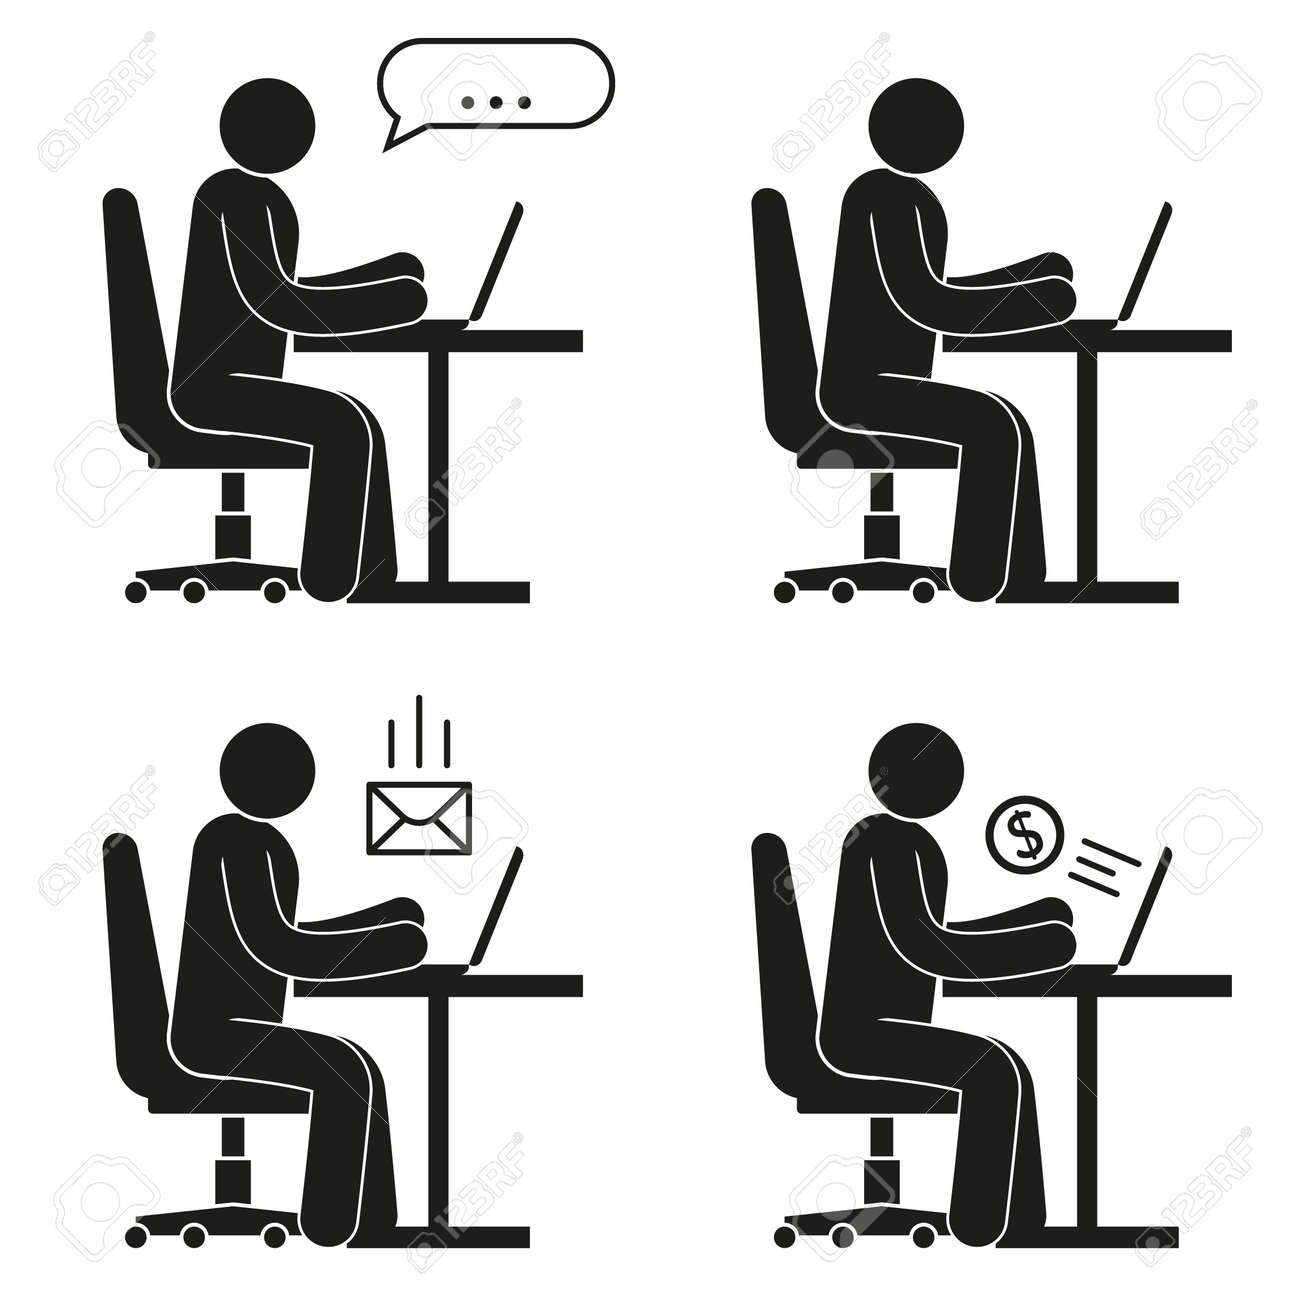 Icon Of People Sitting On Office Chair At Desk With Laptop